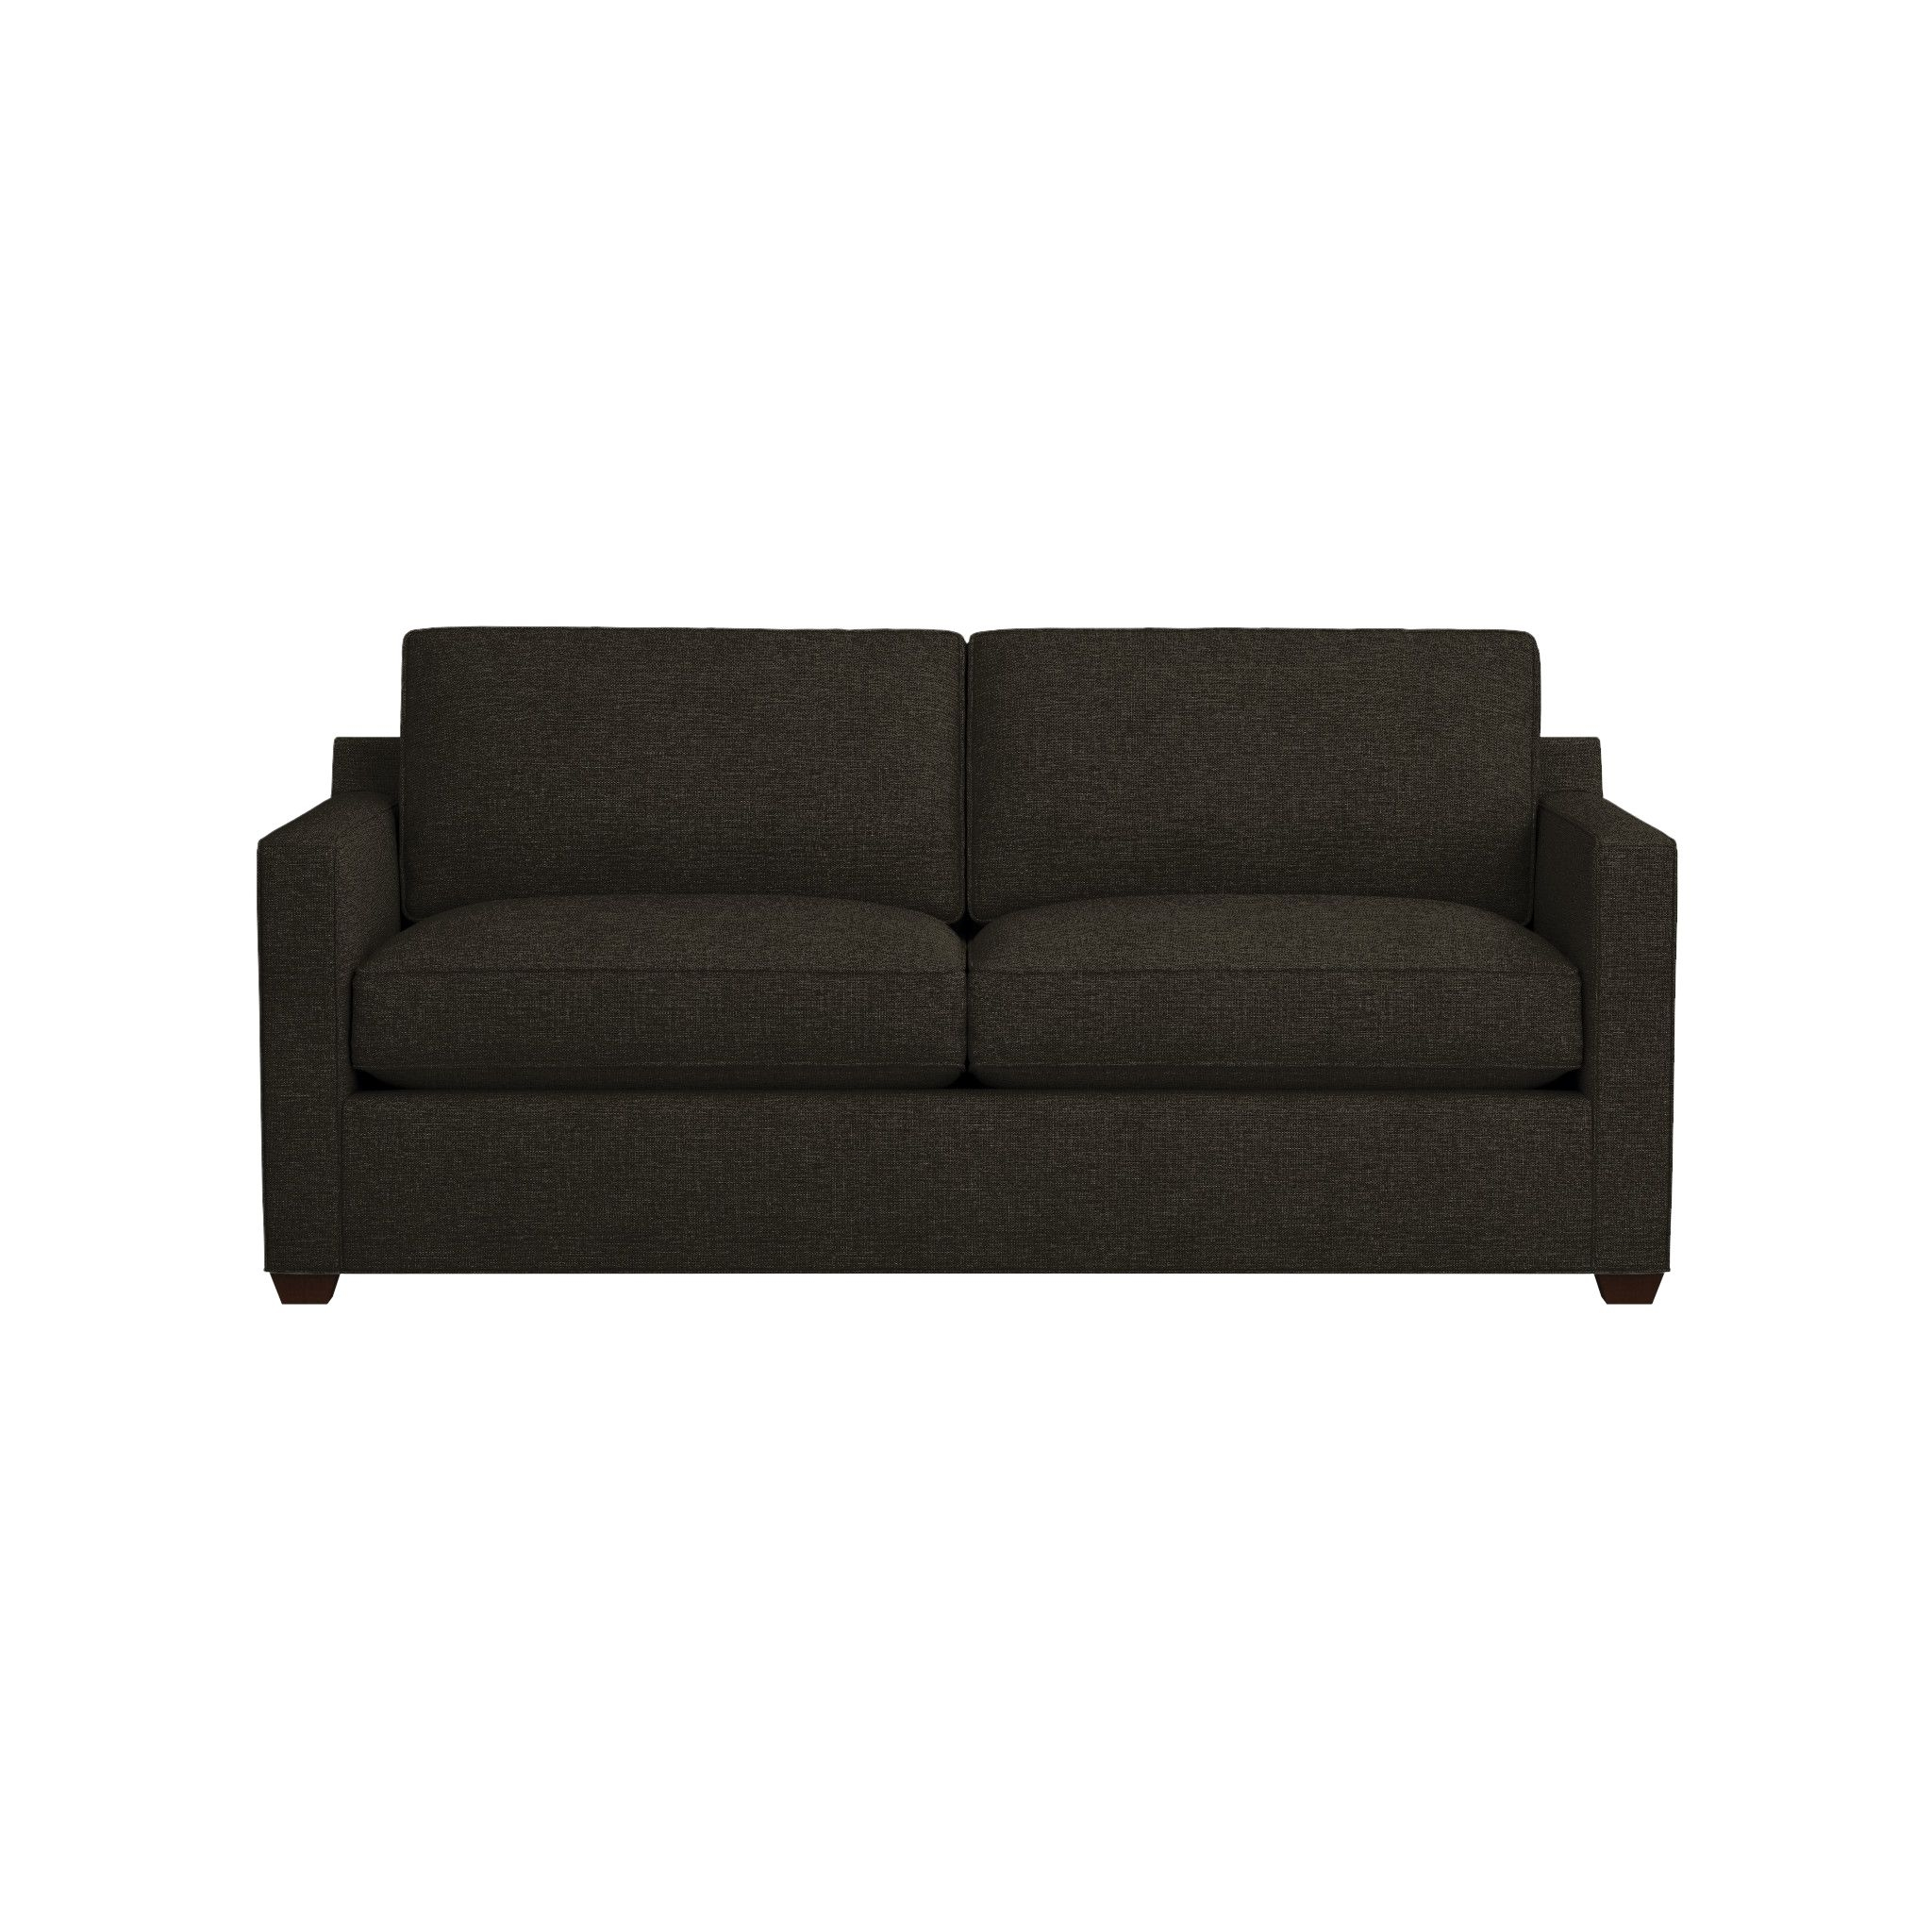 Davis Queen Sleeper Sofa | Crate And Barrel regarding Crate And Barrel Sleeper Sofas (Image 8 of 15)